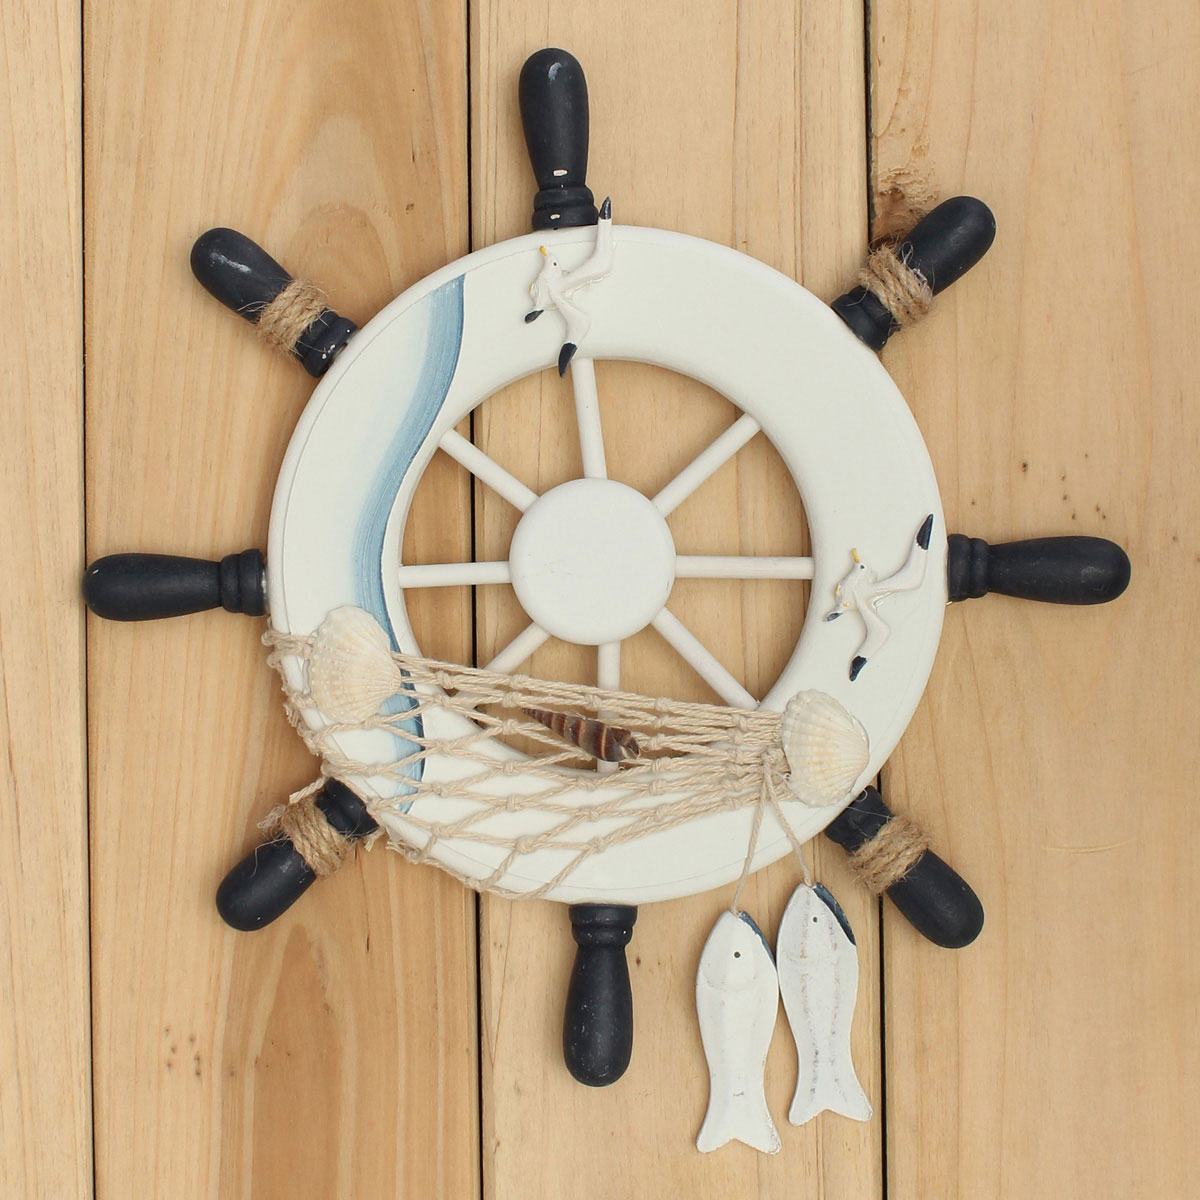 Wood Boat Ship Wheel Rudder Nautical Decoration Beach Home Wall Hanging Decorations